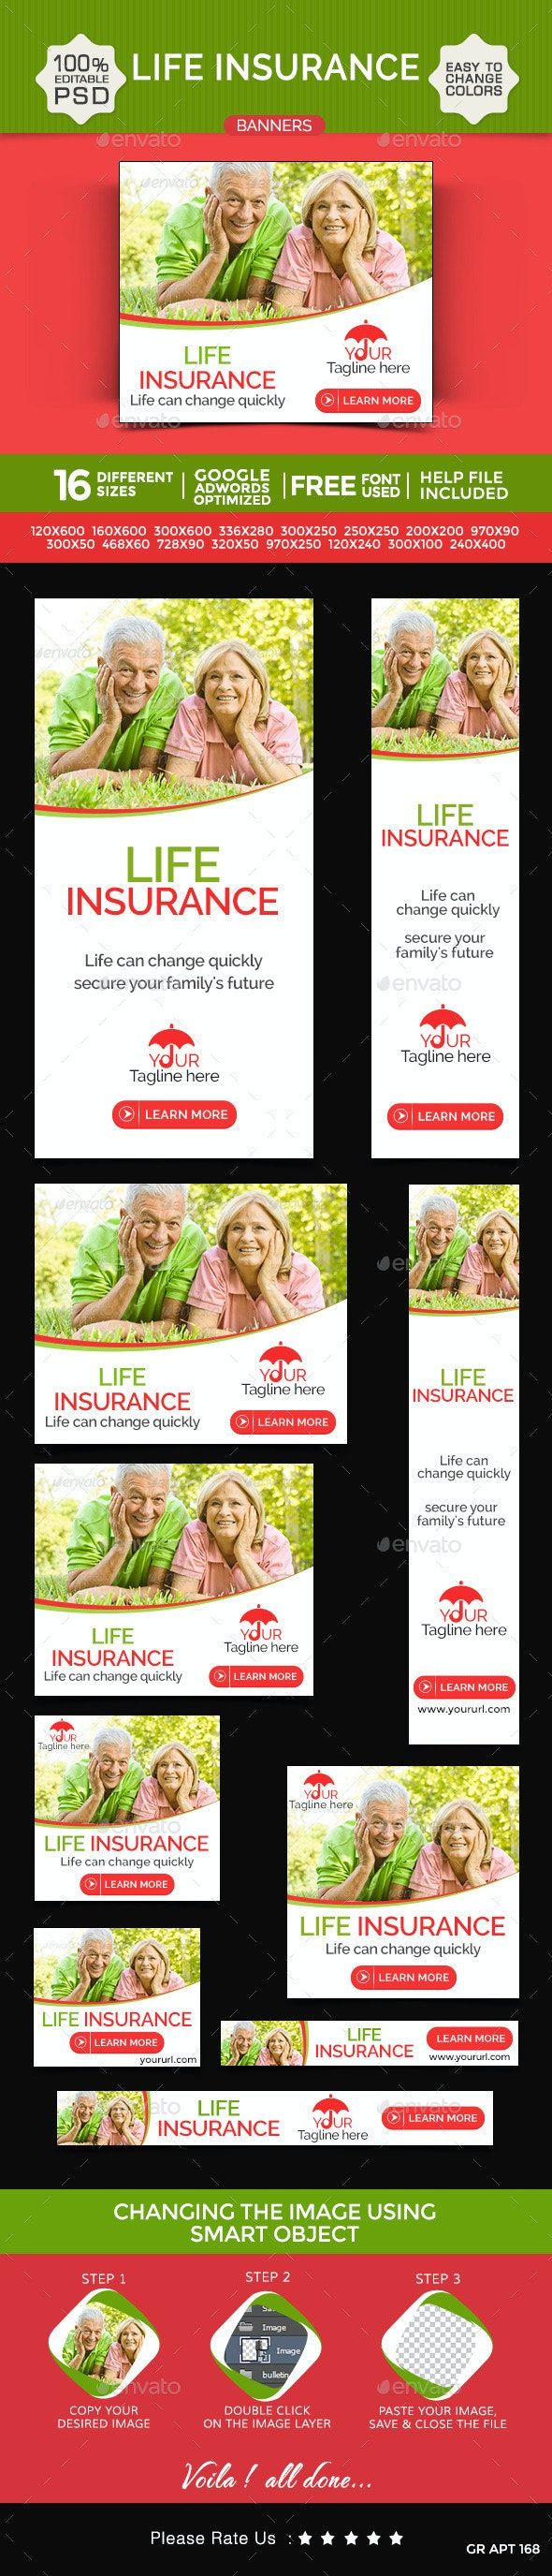 Life Insurance Banners - Banners & Ads Web Elements